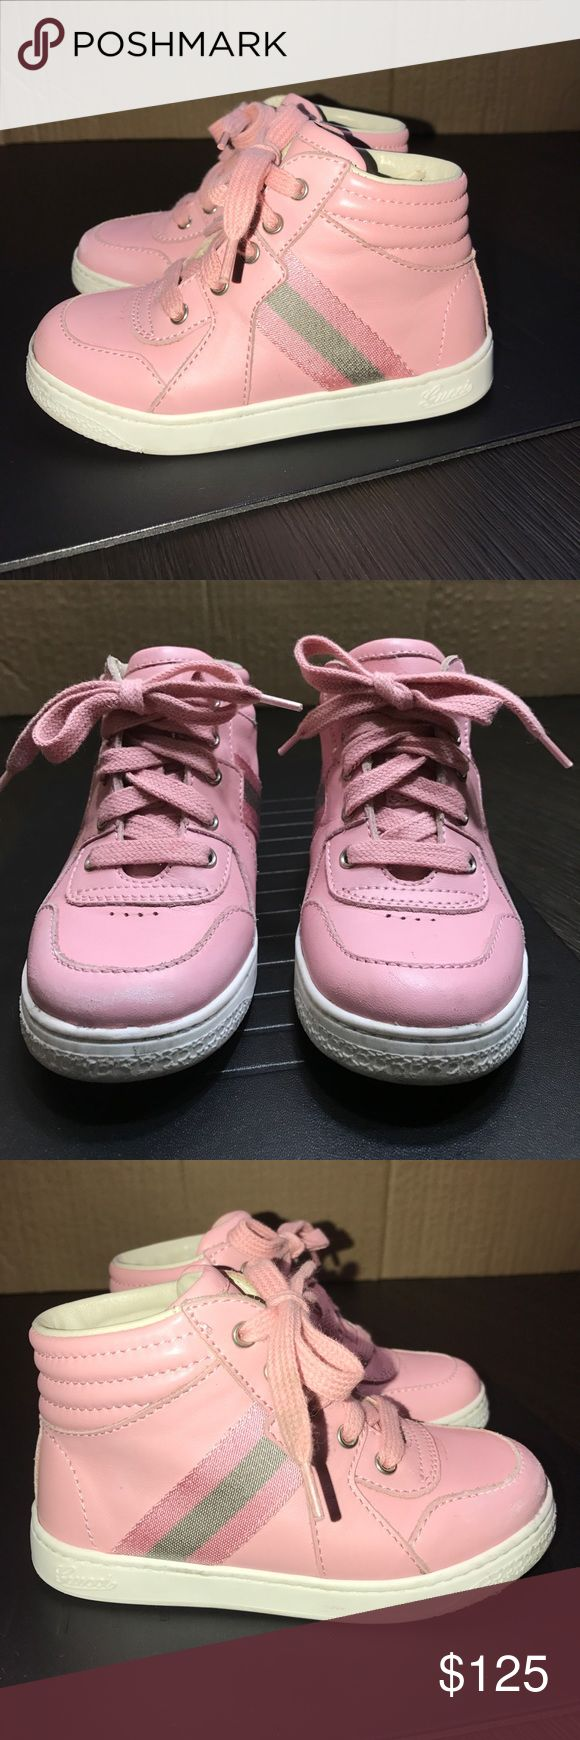 Gucci girl toddler pink tennis shoes sneakers 8 Authentic Gucci Signature toddler girls pink leather high top tennis shoes sneakers sz 8 Euro 24 . Very good condition light wear light scuffs Gucci Shoes Sneakers